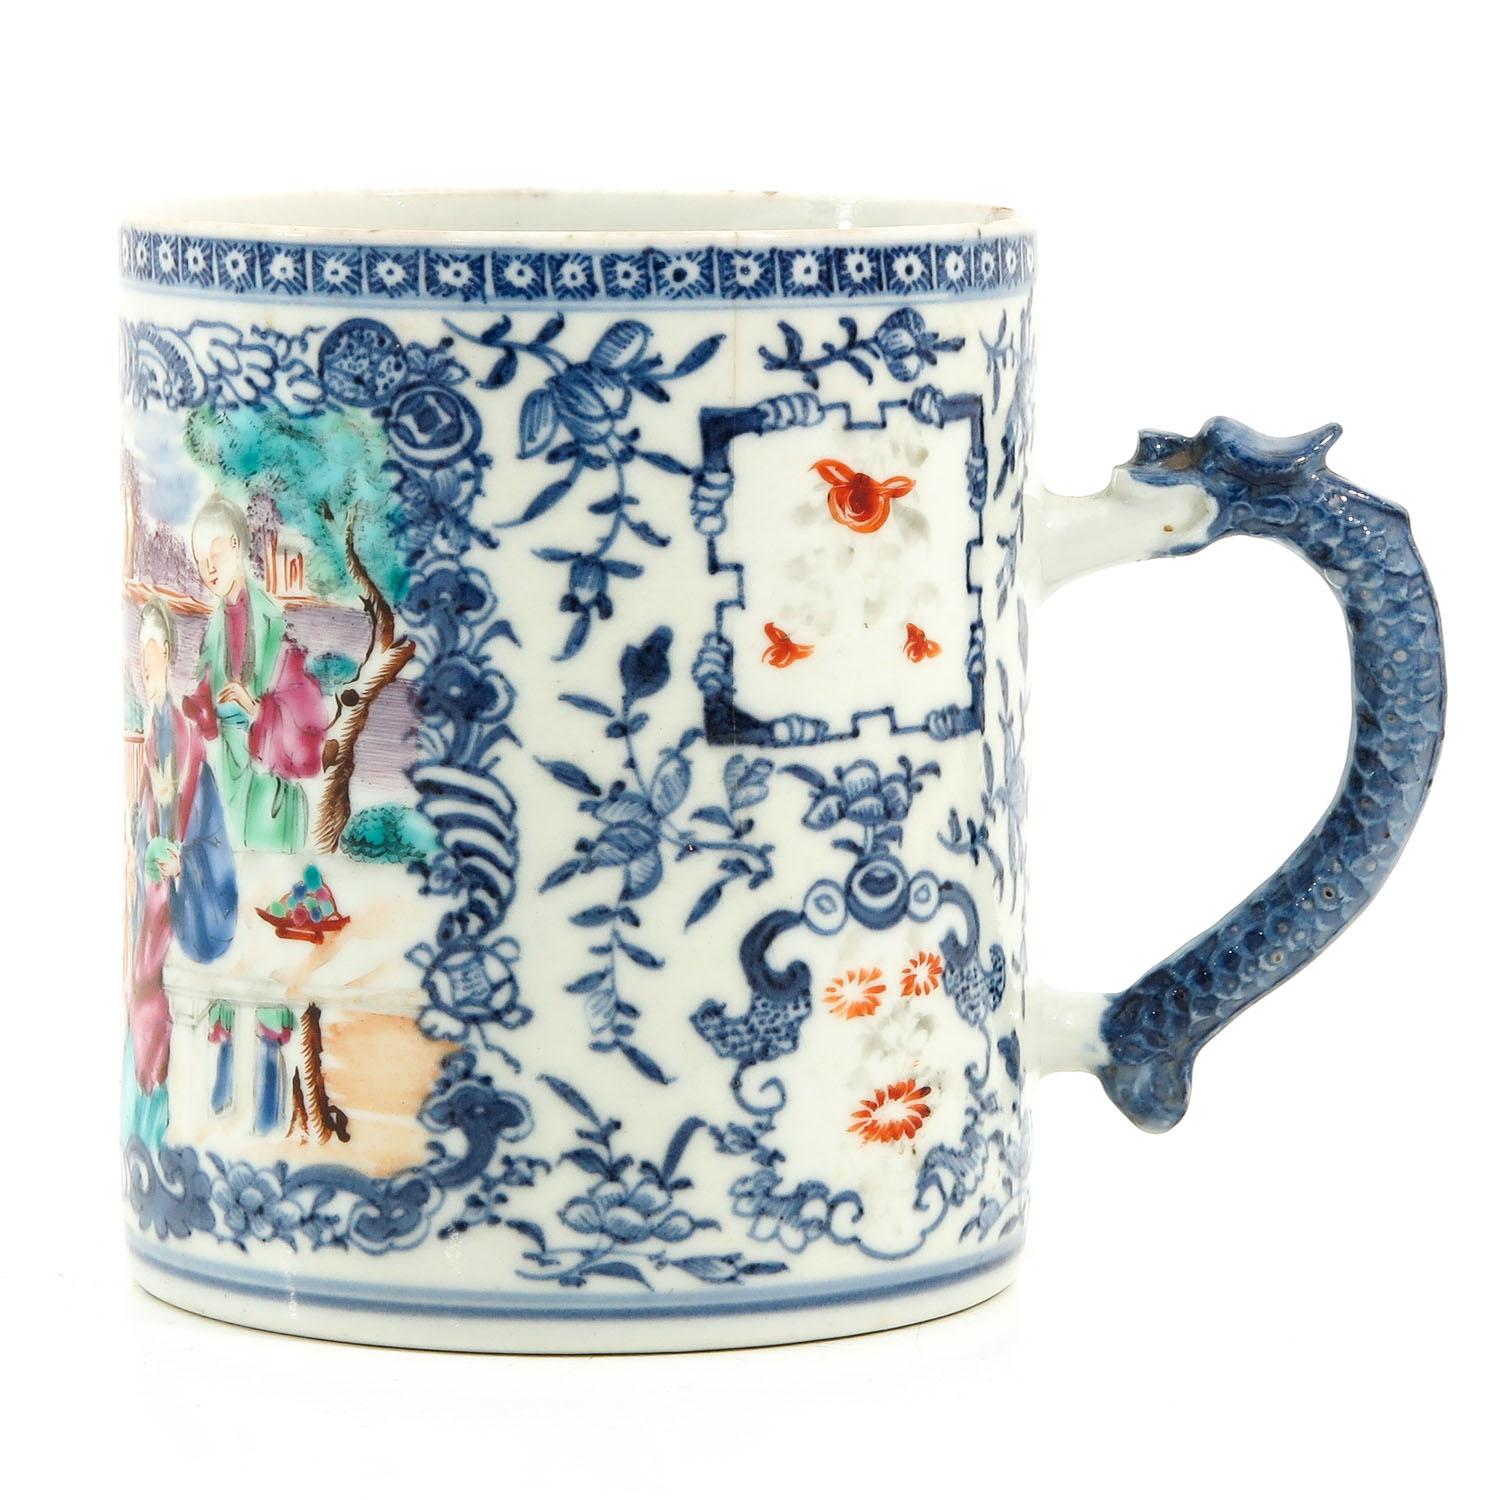 A Polychrome Decor Mug